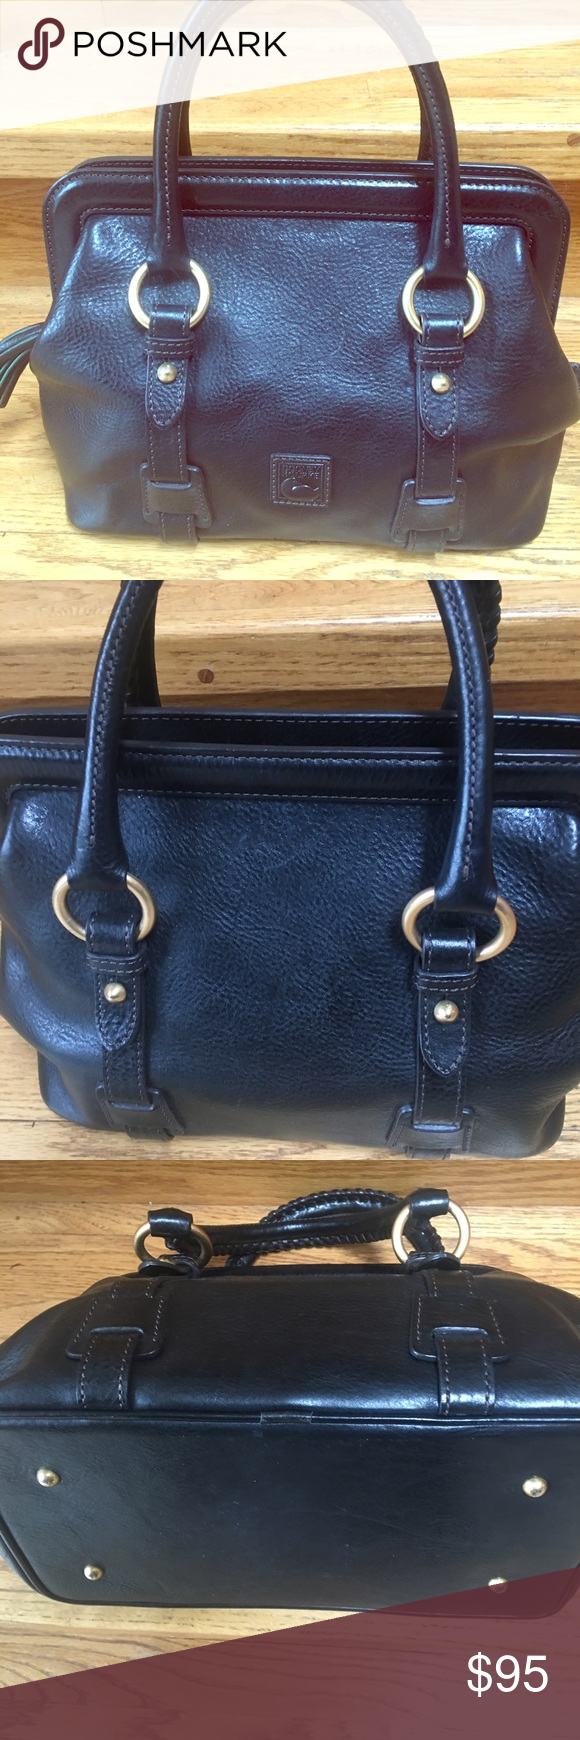 df17db77f13657 Dooney and Bourne used purse Small Mitchell Leather Satchel please note  this purse does not have a shoulder strap. Lightly used Dooney & Bourke Bags  ...